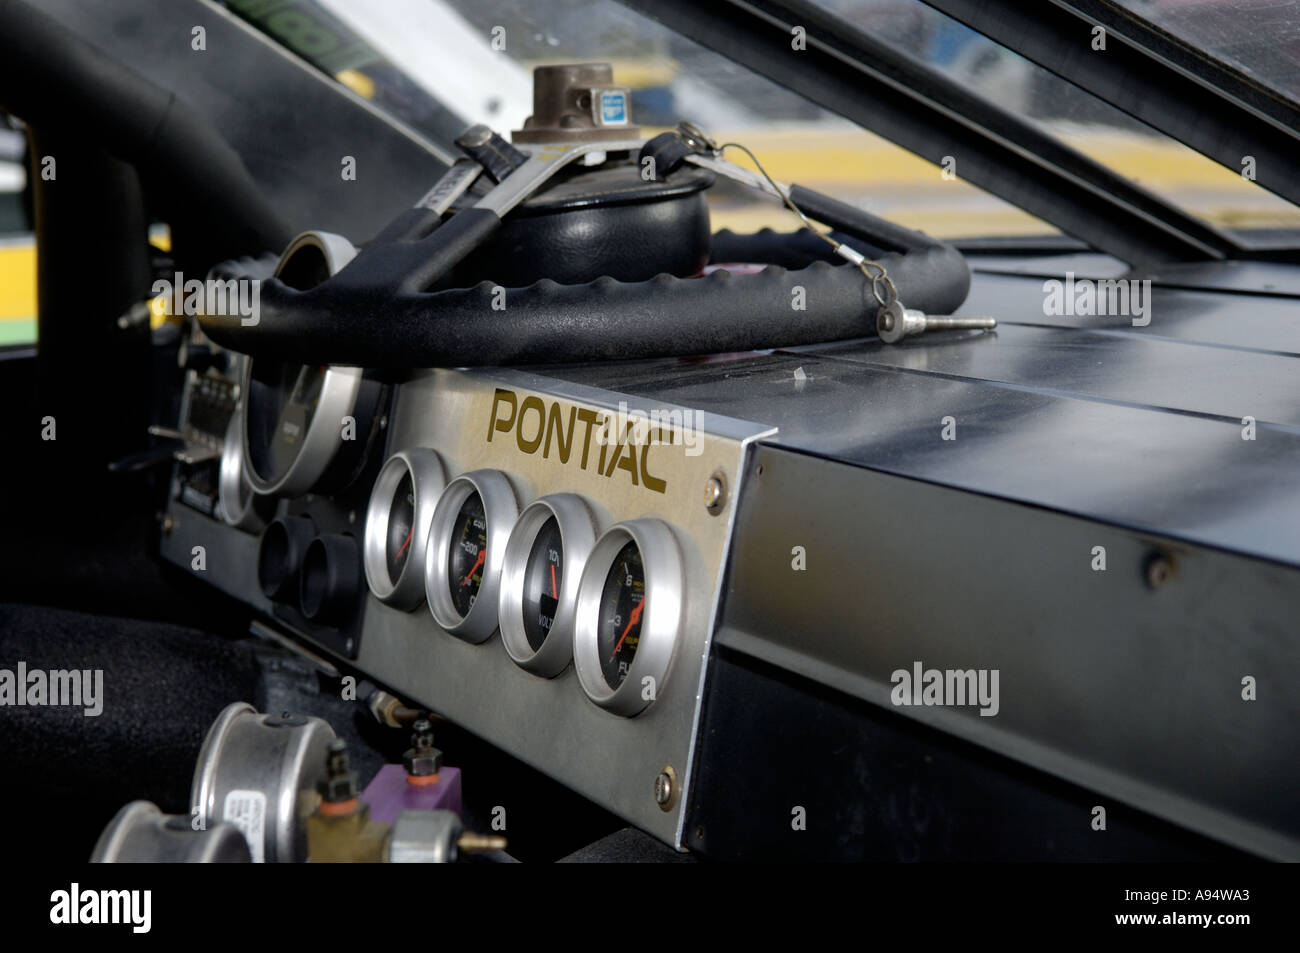 pontiac grand prix high resolution stock photography and images alamy https www alamy com interioror detail of a 1991 pontiac grand prix race car and the vintage image4000162 html